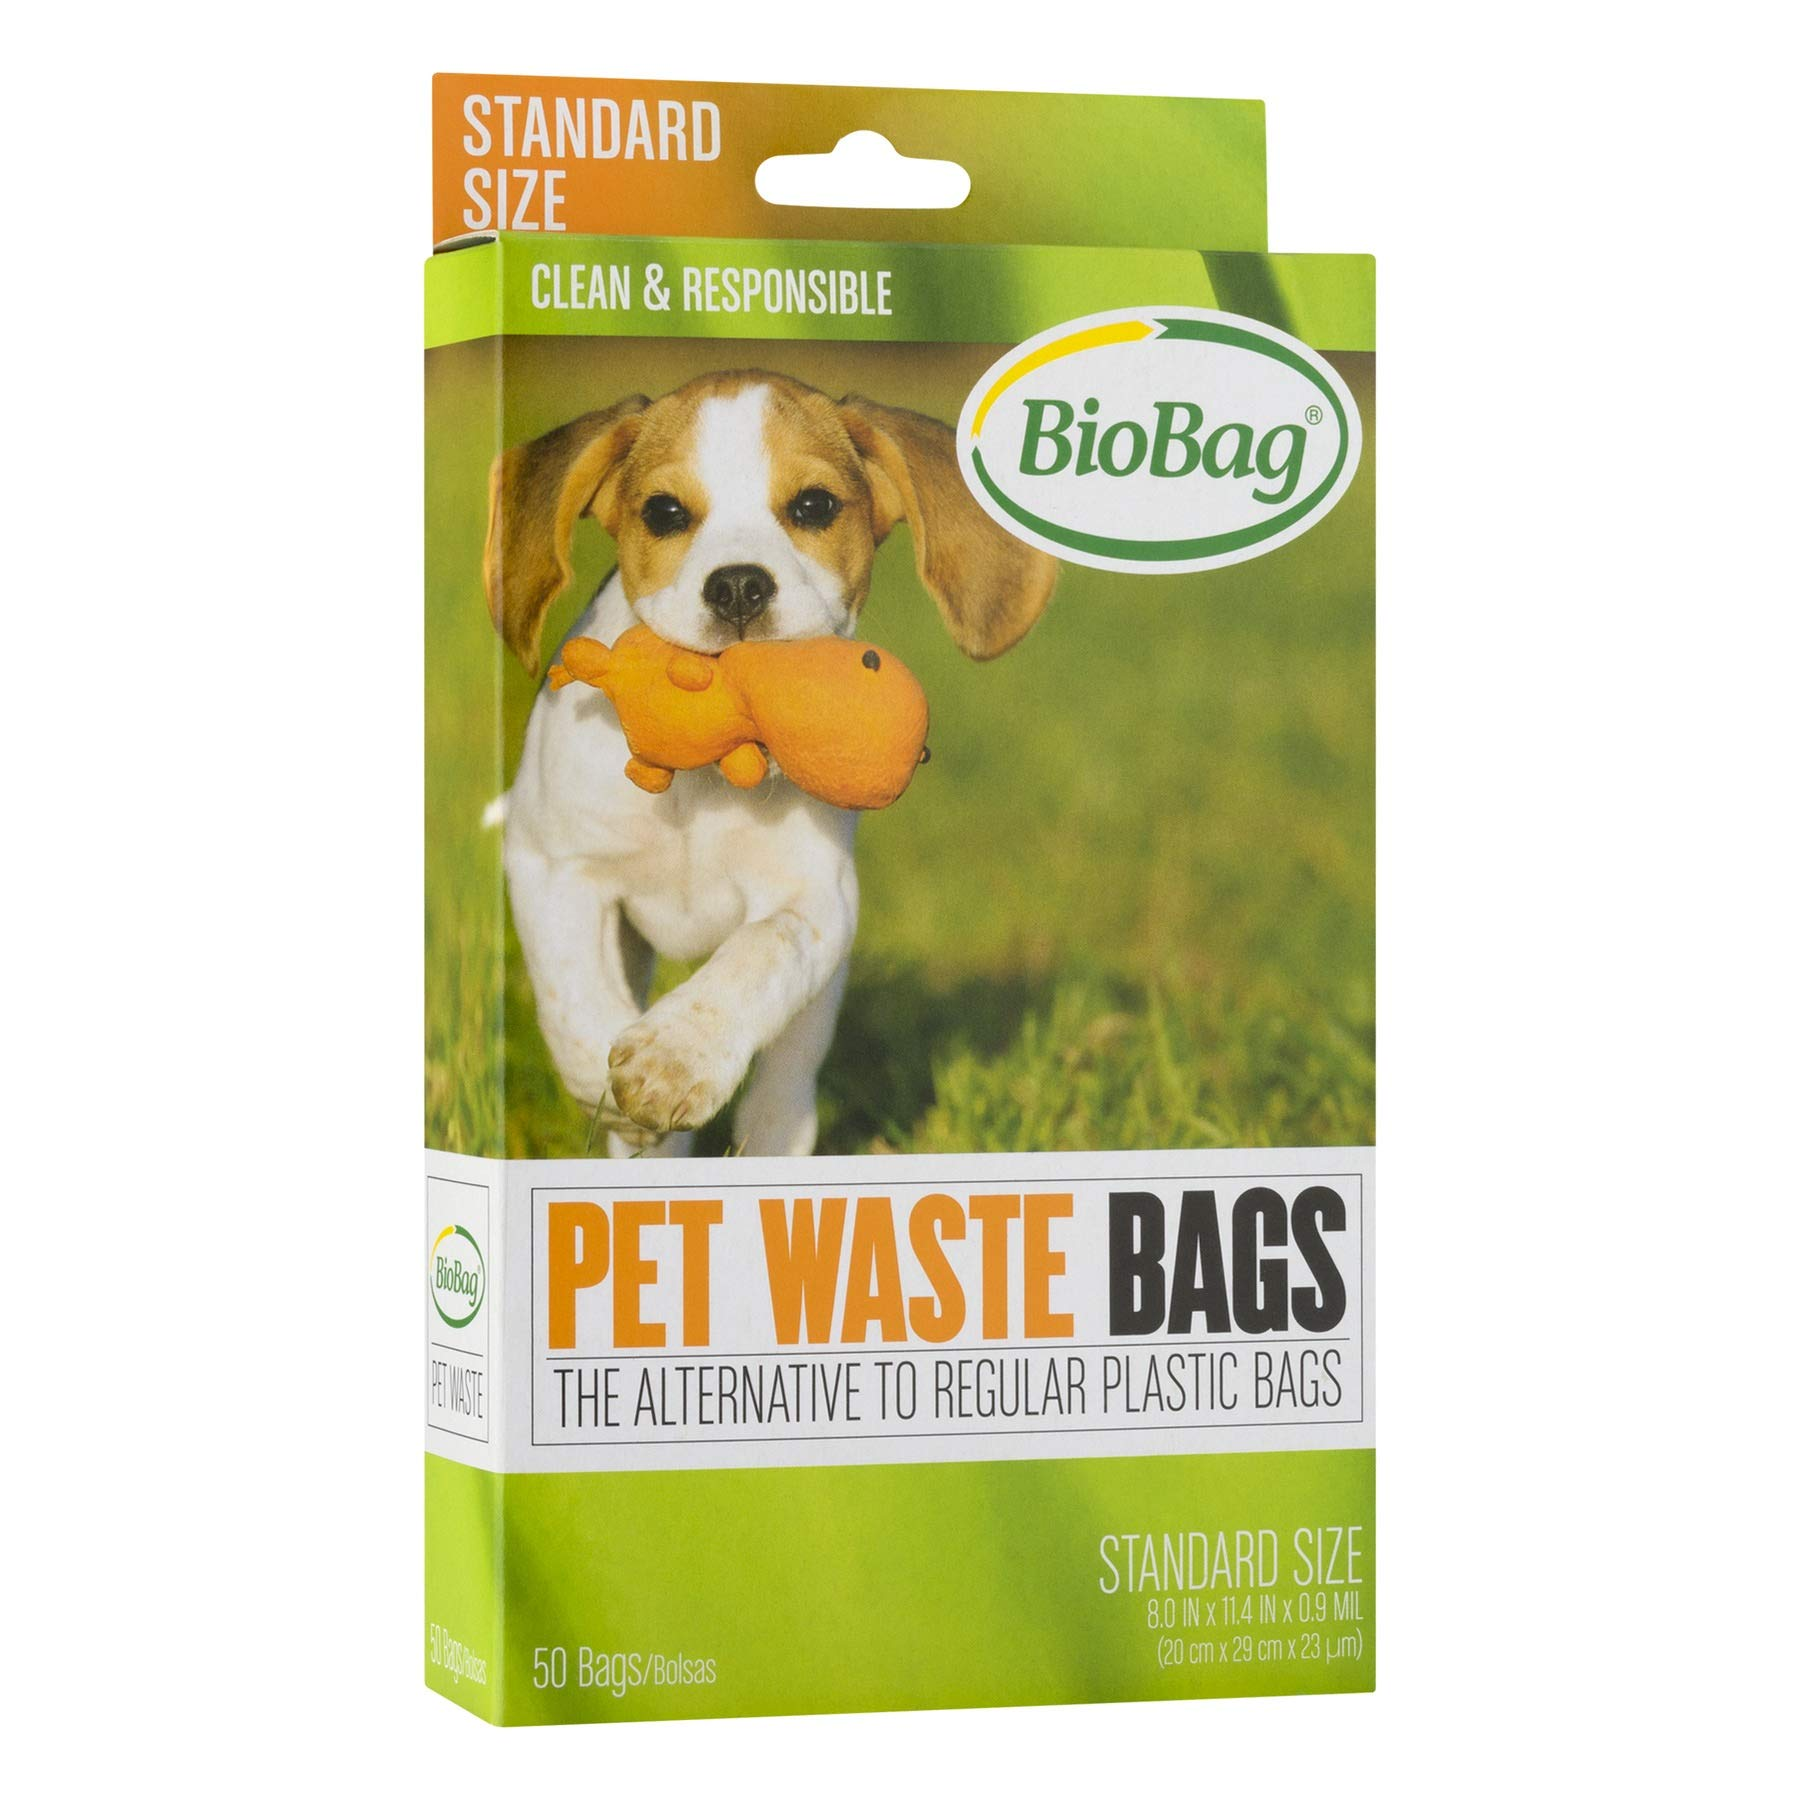 Bio Bag Premium Pet Waste Bags, Standard Size, 50 Count - Pack of 4 - PACKAGING OR COLOR MAY VARY by BioBag